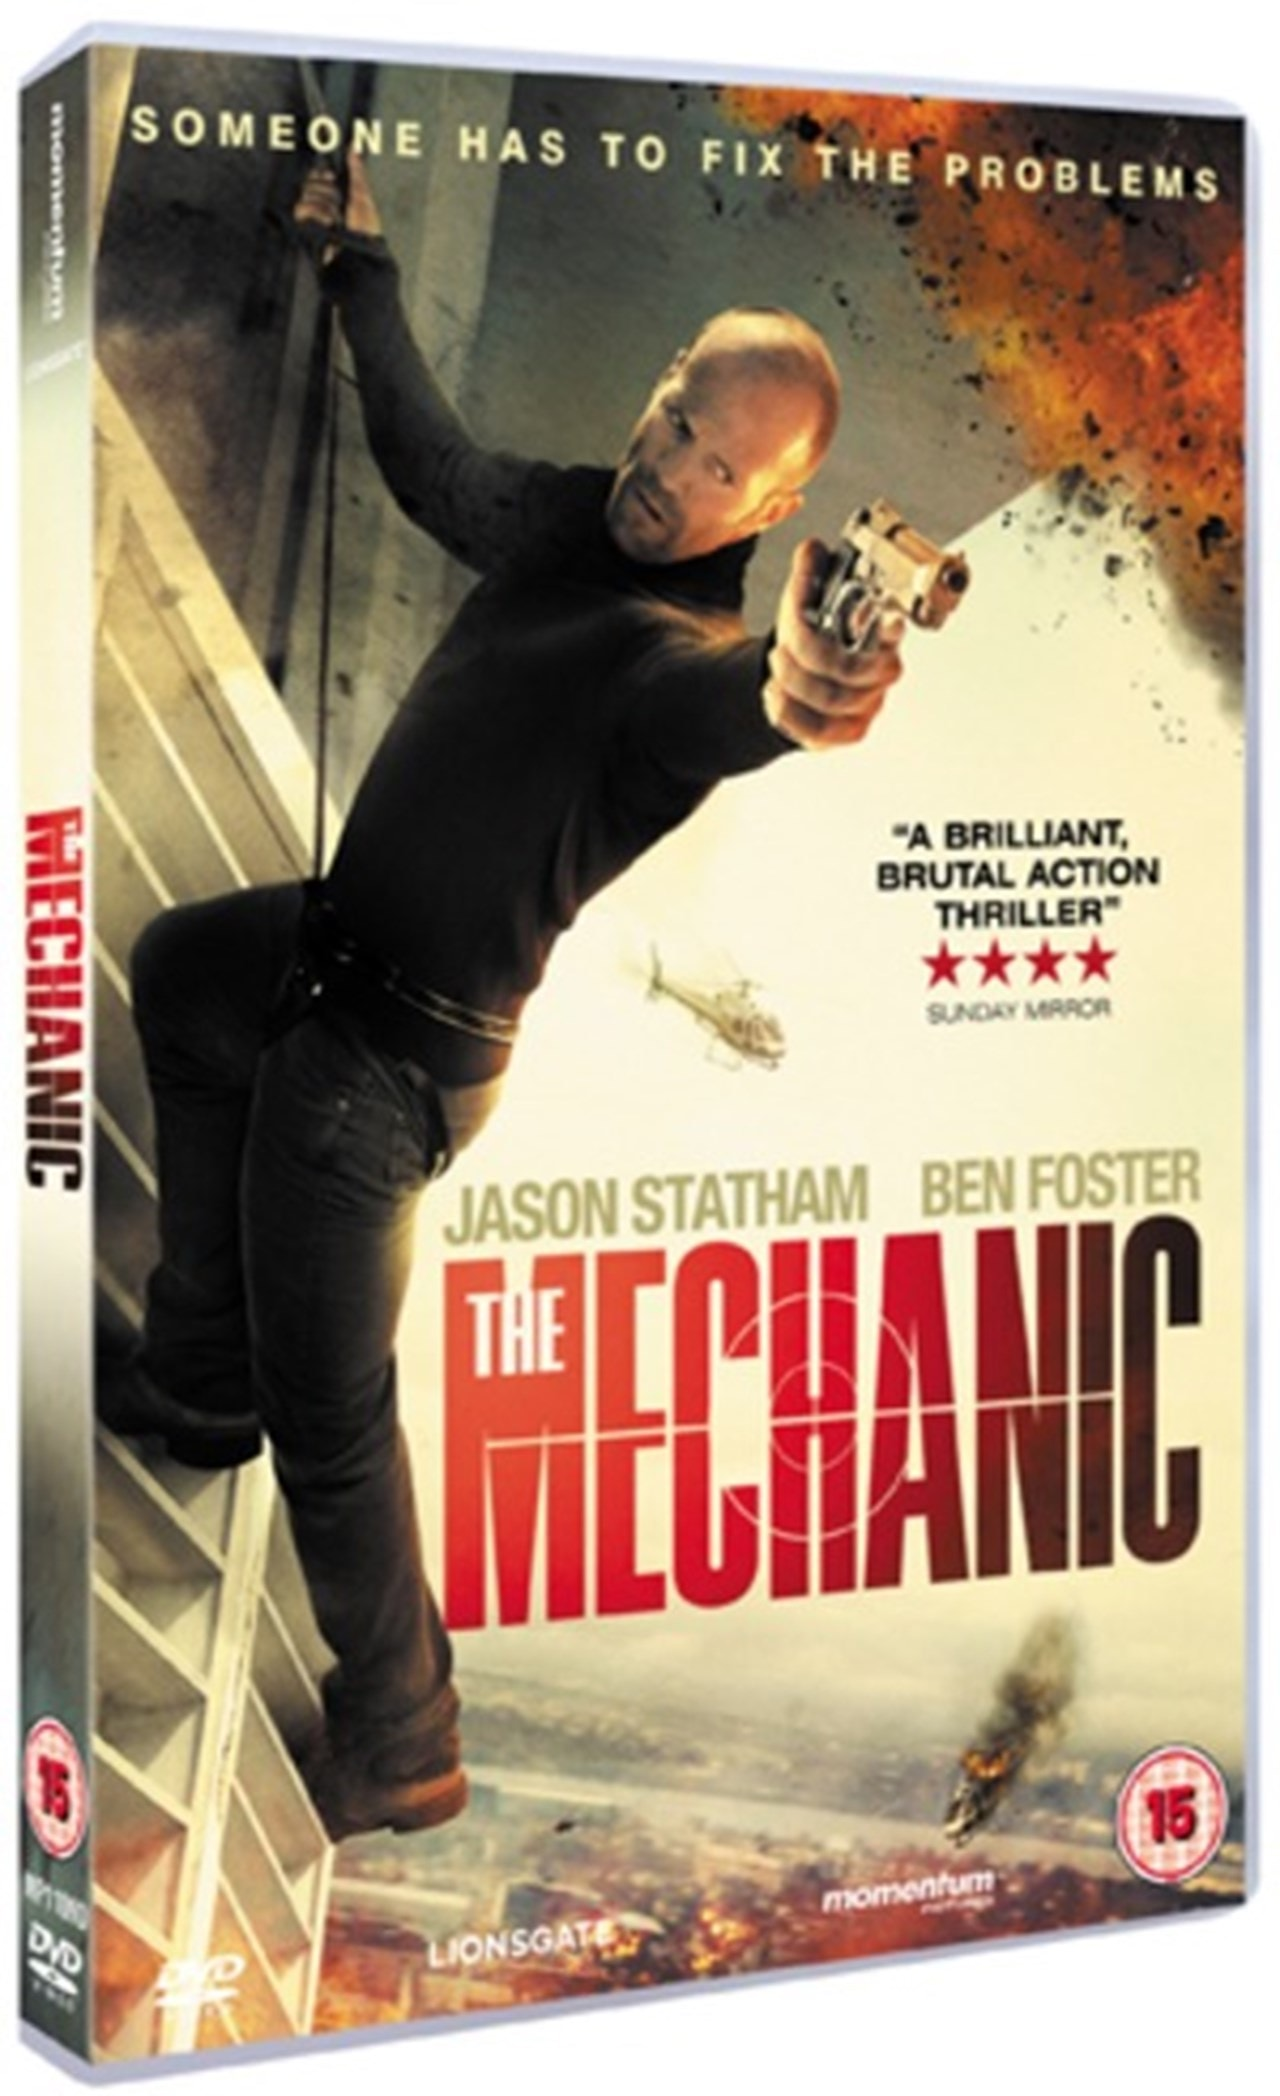 The Mechanic - 1